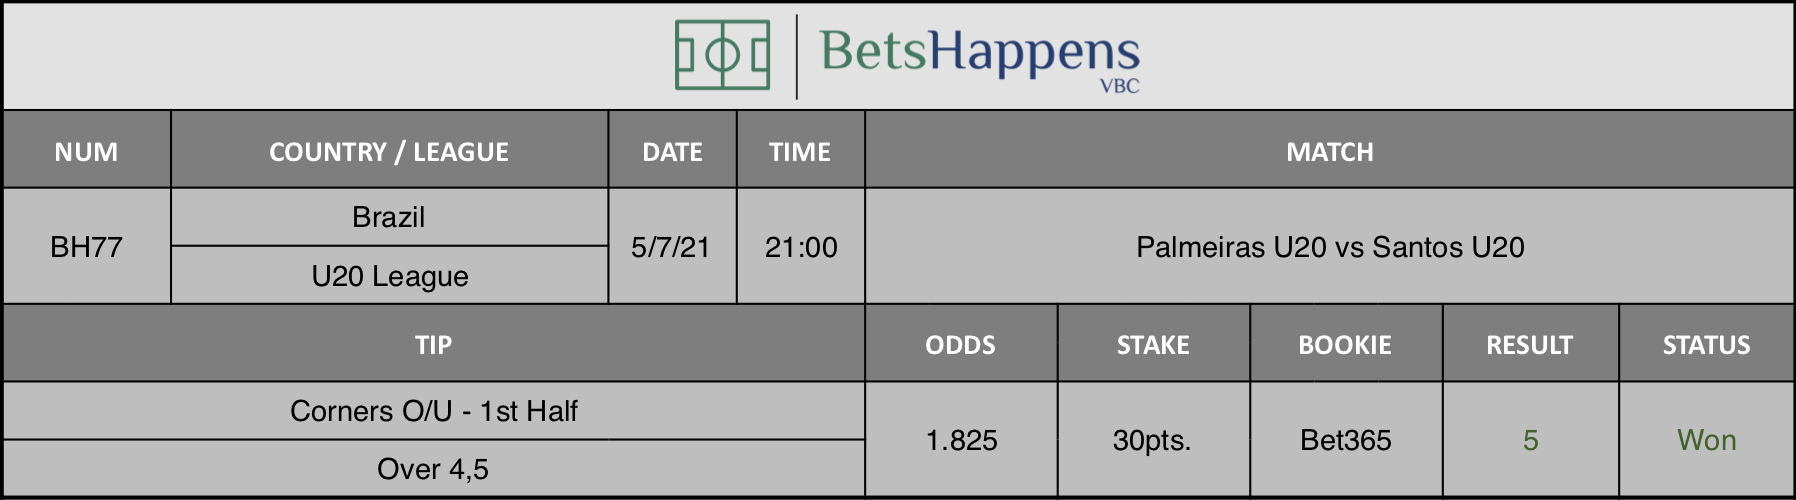 Results of our tip for the Palmeiras U20 vs Santos U20 match. Corners O/U - 1st Half  Over 4,5 is recommended.